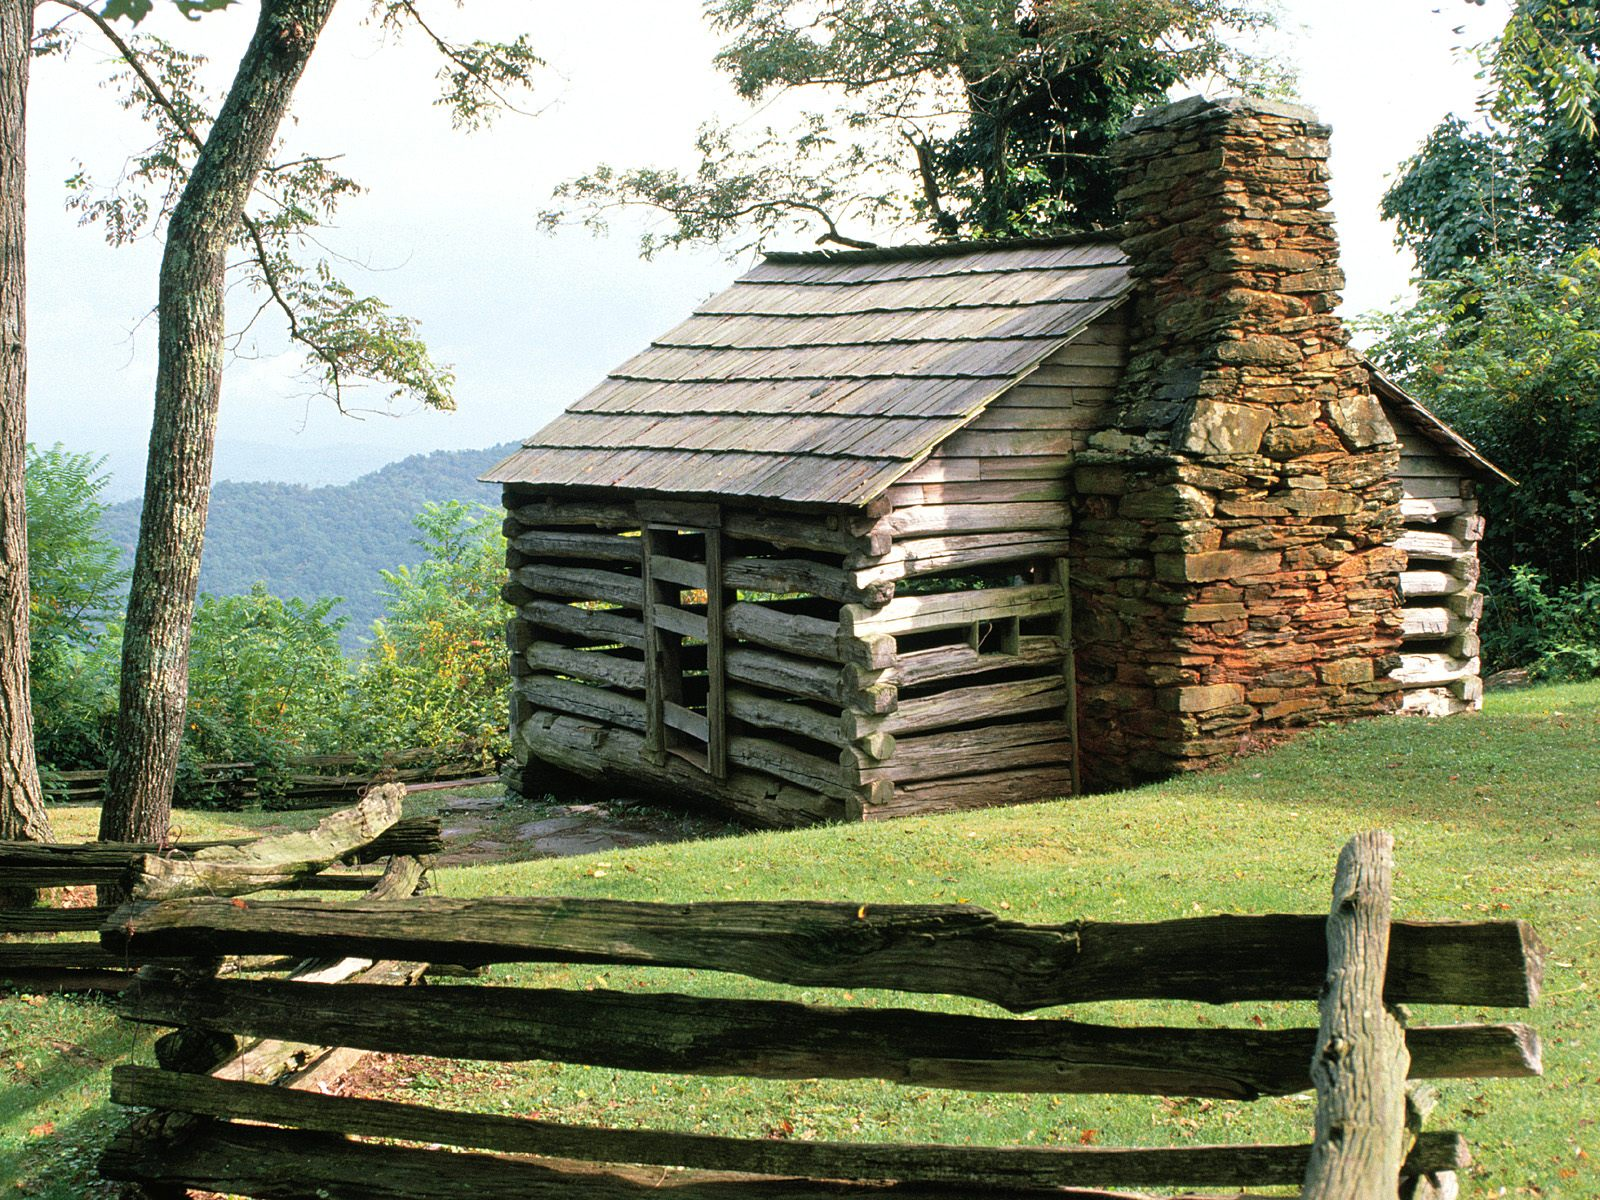 Log Cabin Blue Ridge Parkway Virginia Related river 4 Moat Wallpapers 1600x1200